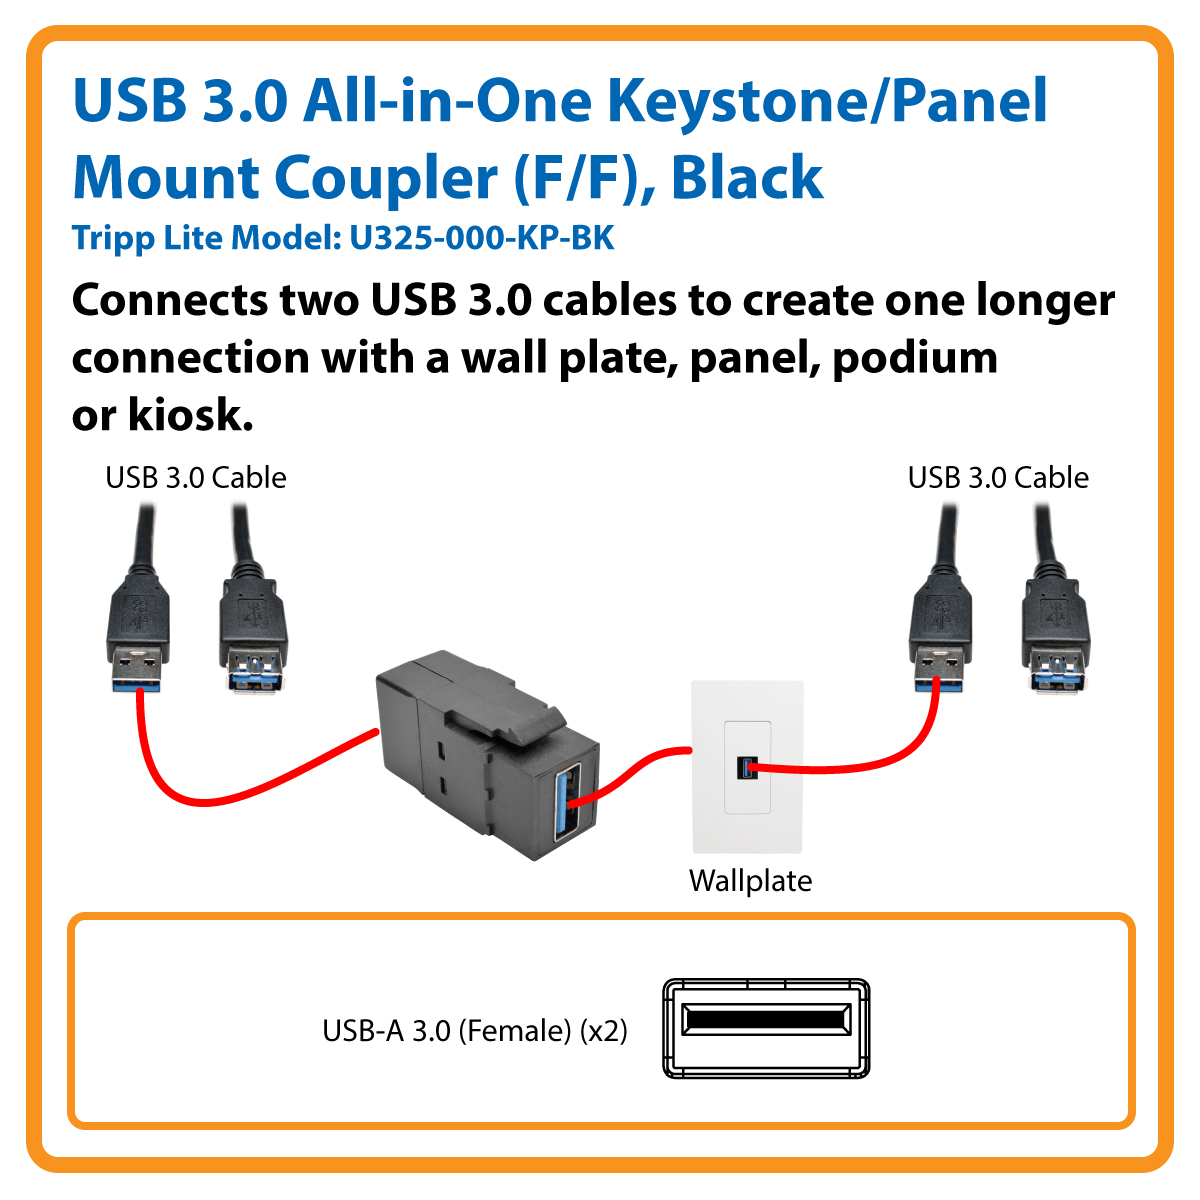 hight resolution of usb 3 0 all in one keystone panel mount coupler f f